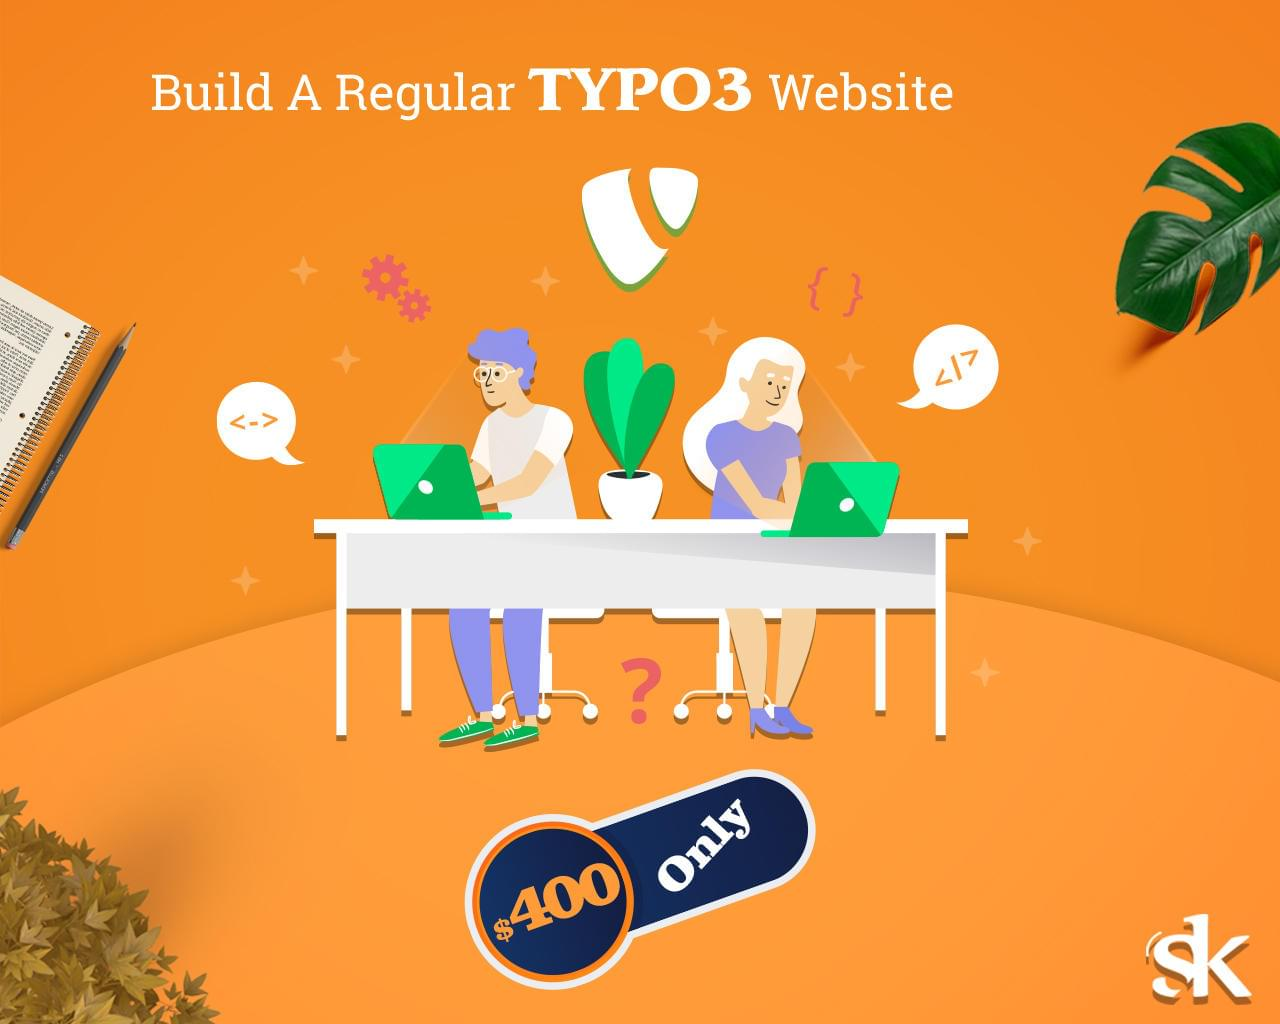 Build A Regular TYPO3 Website by SK-Web-Solutions - 115835